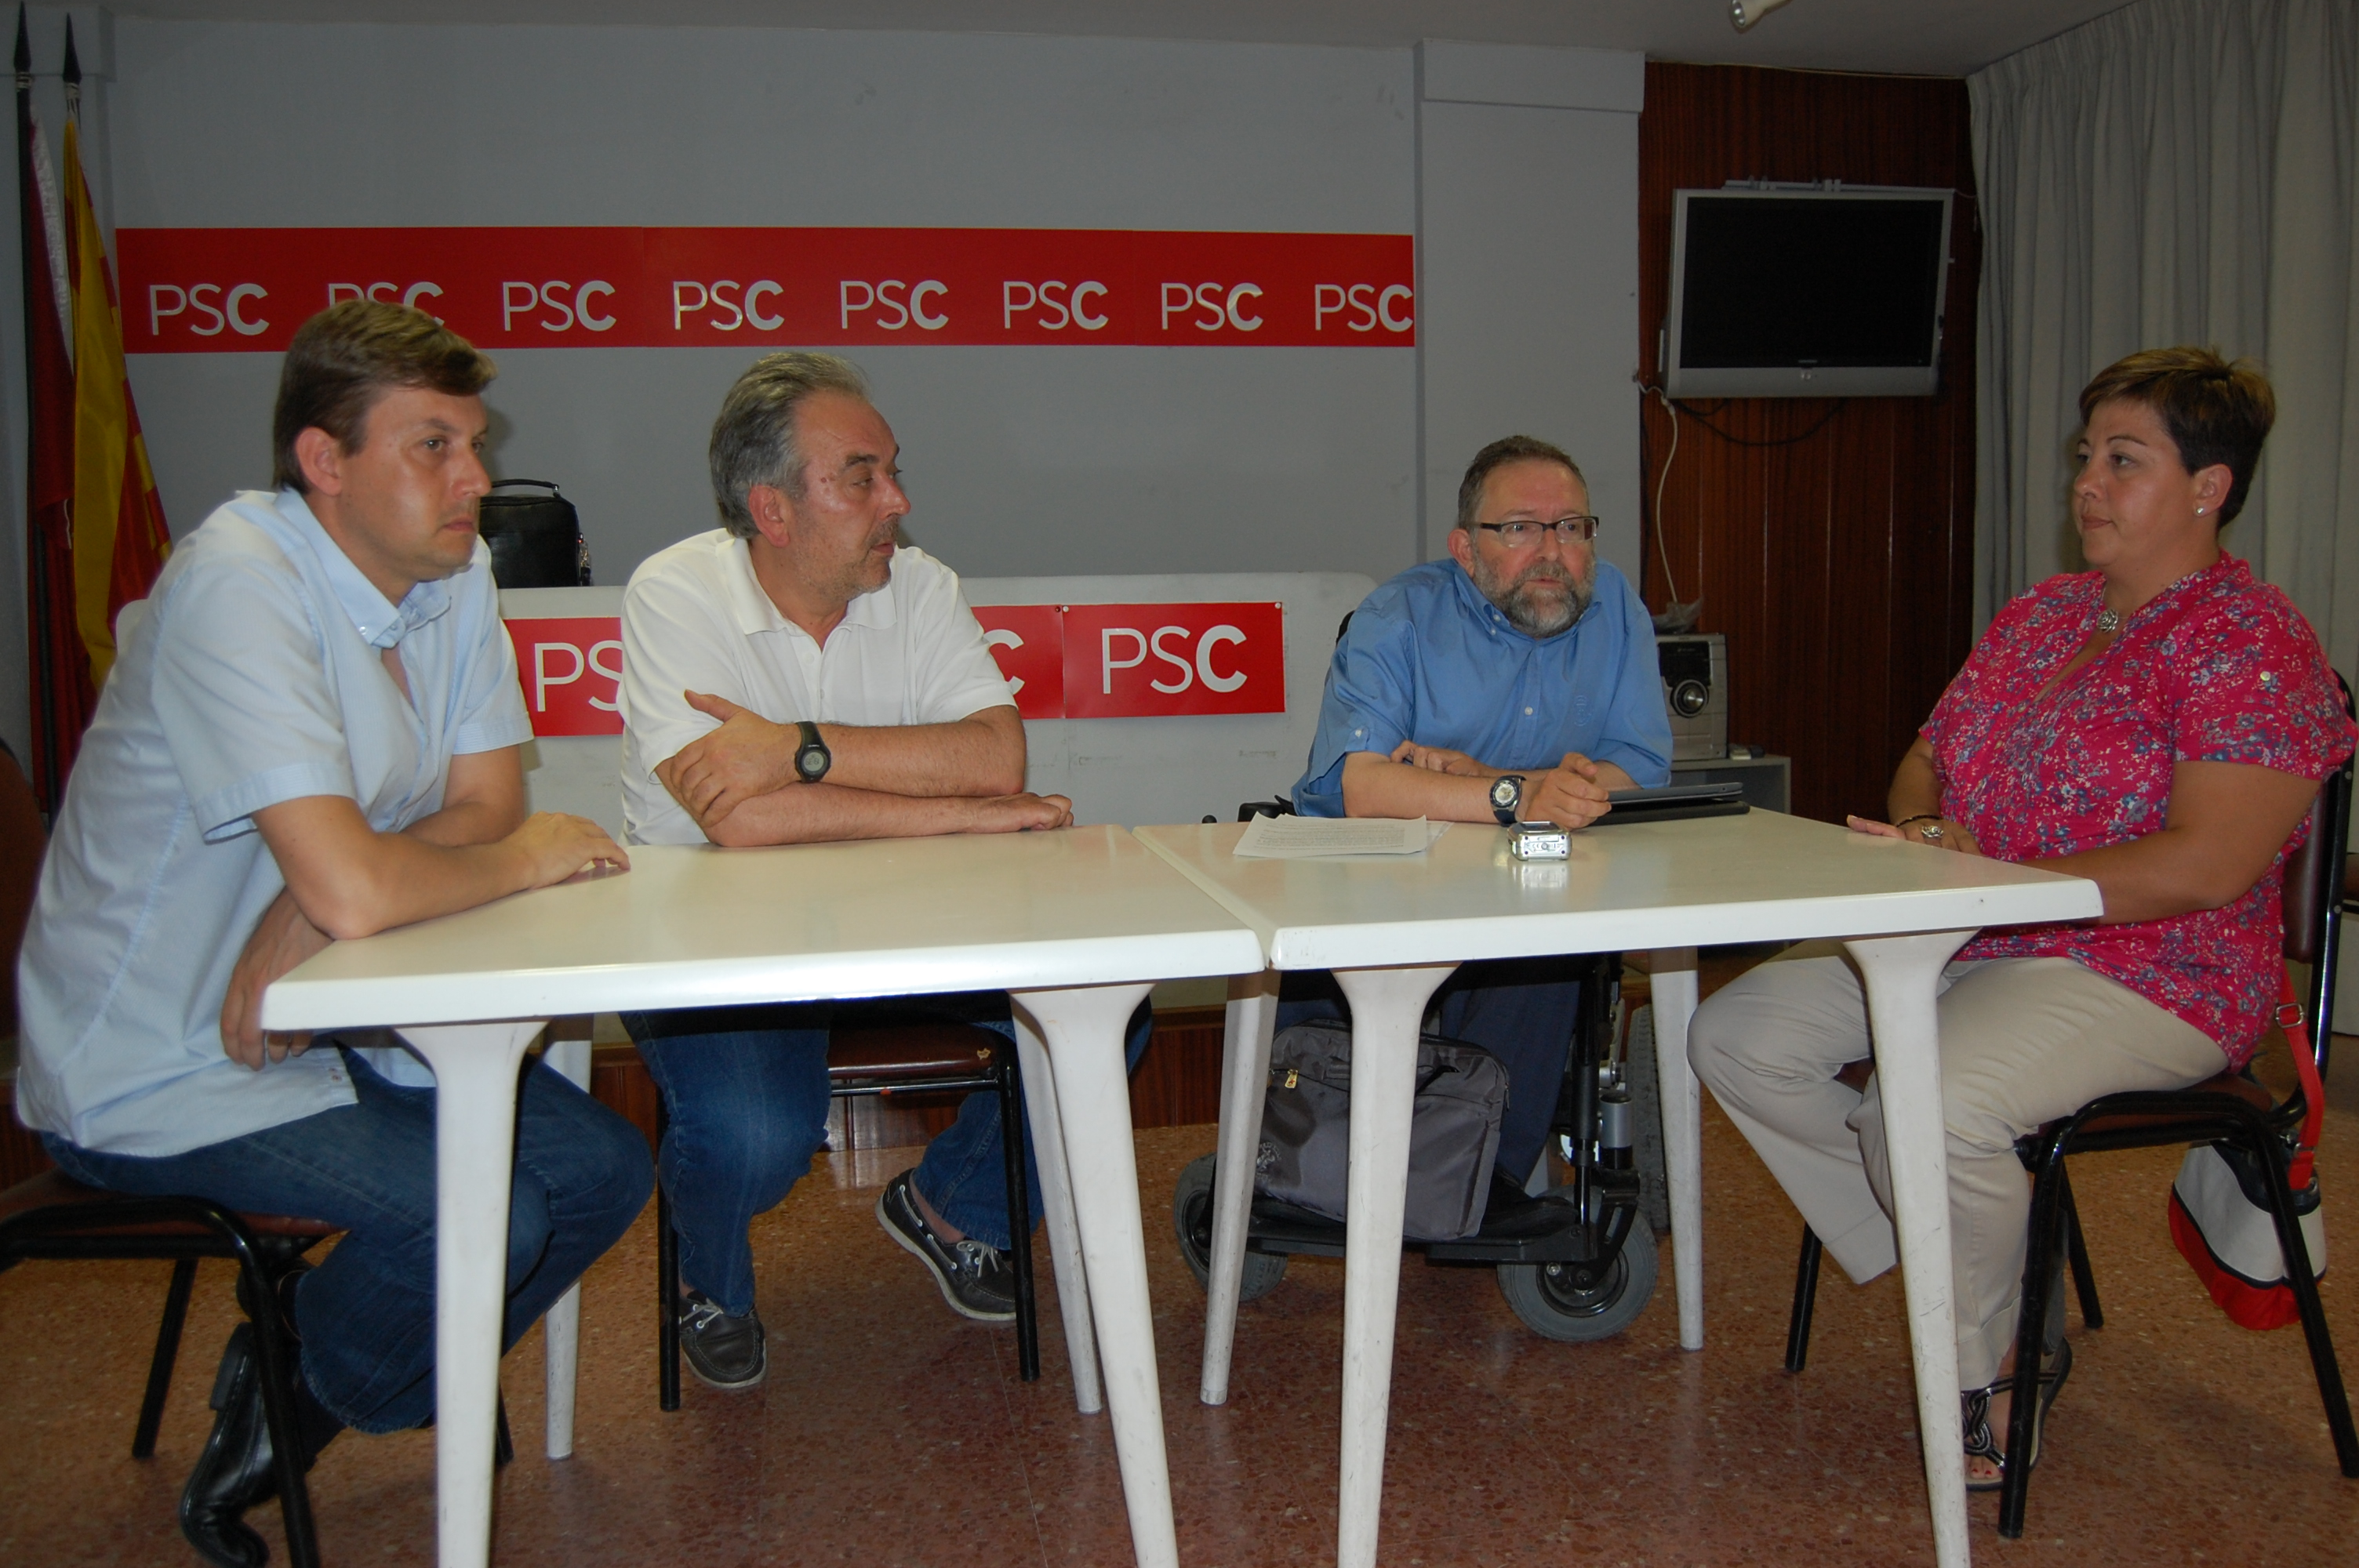 El PSC de Ripollet recull m&#233;s de 800 signatures en contra de les retallades a les escoles bressol -Imatge 1-